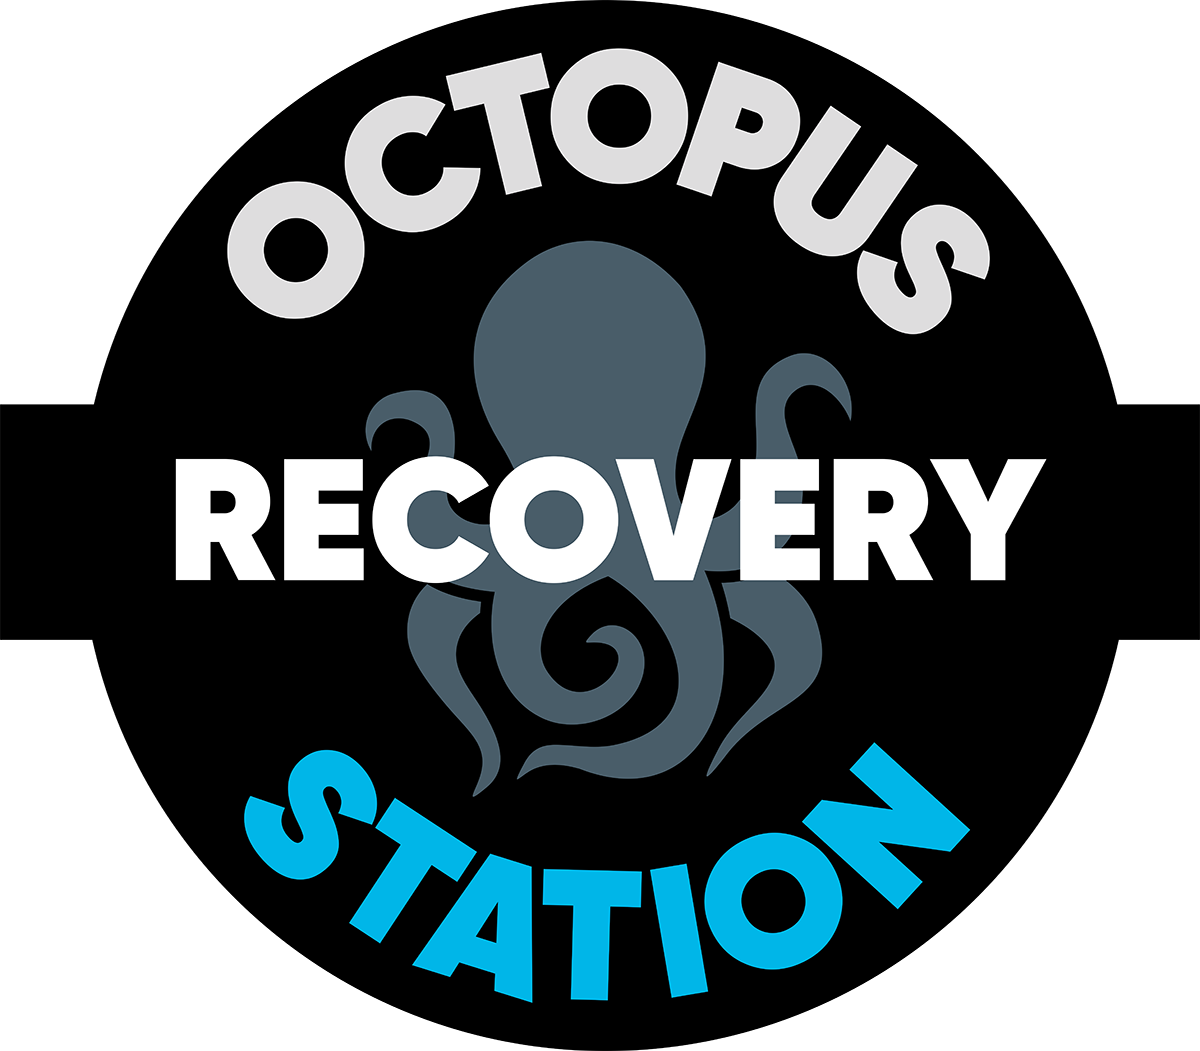 Octopus Recovery Station